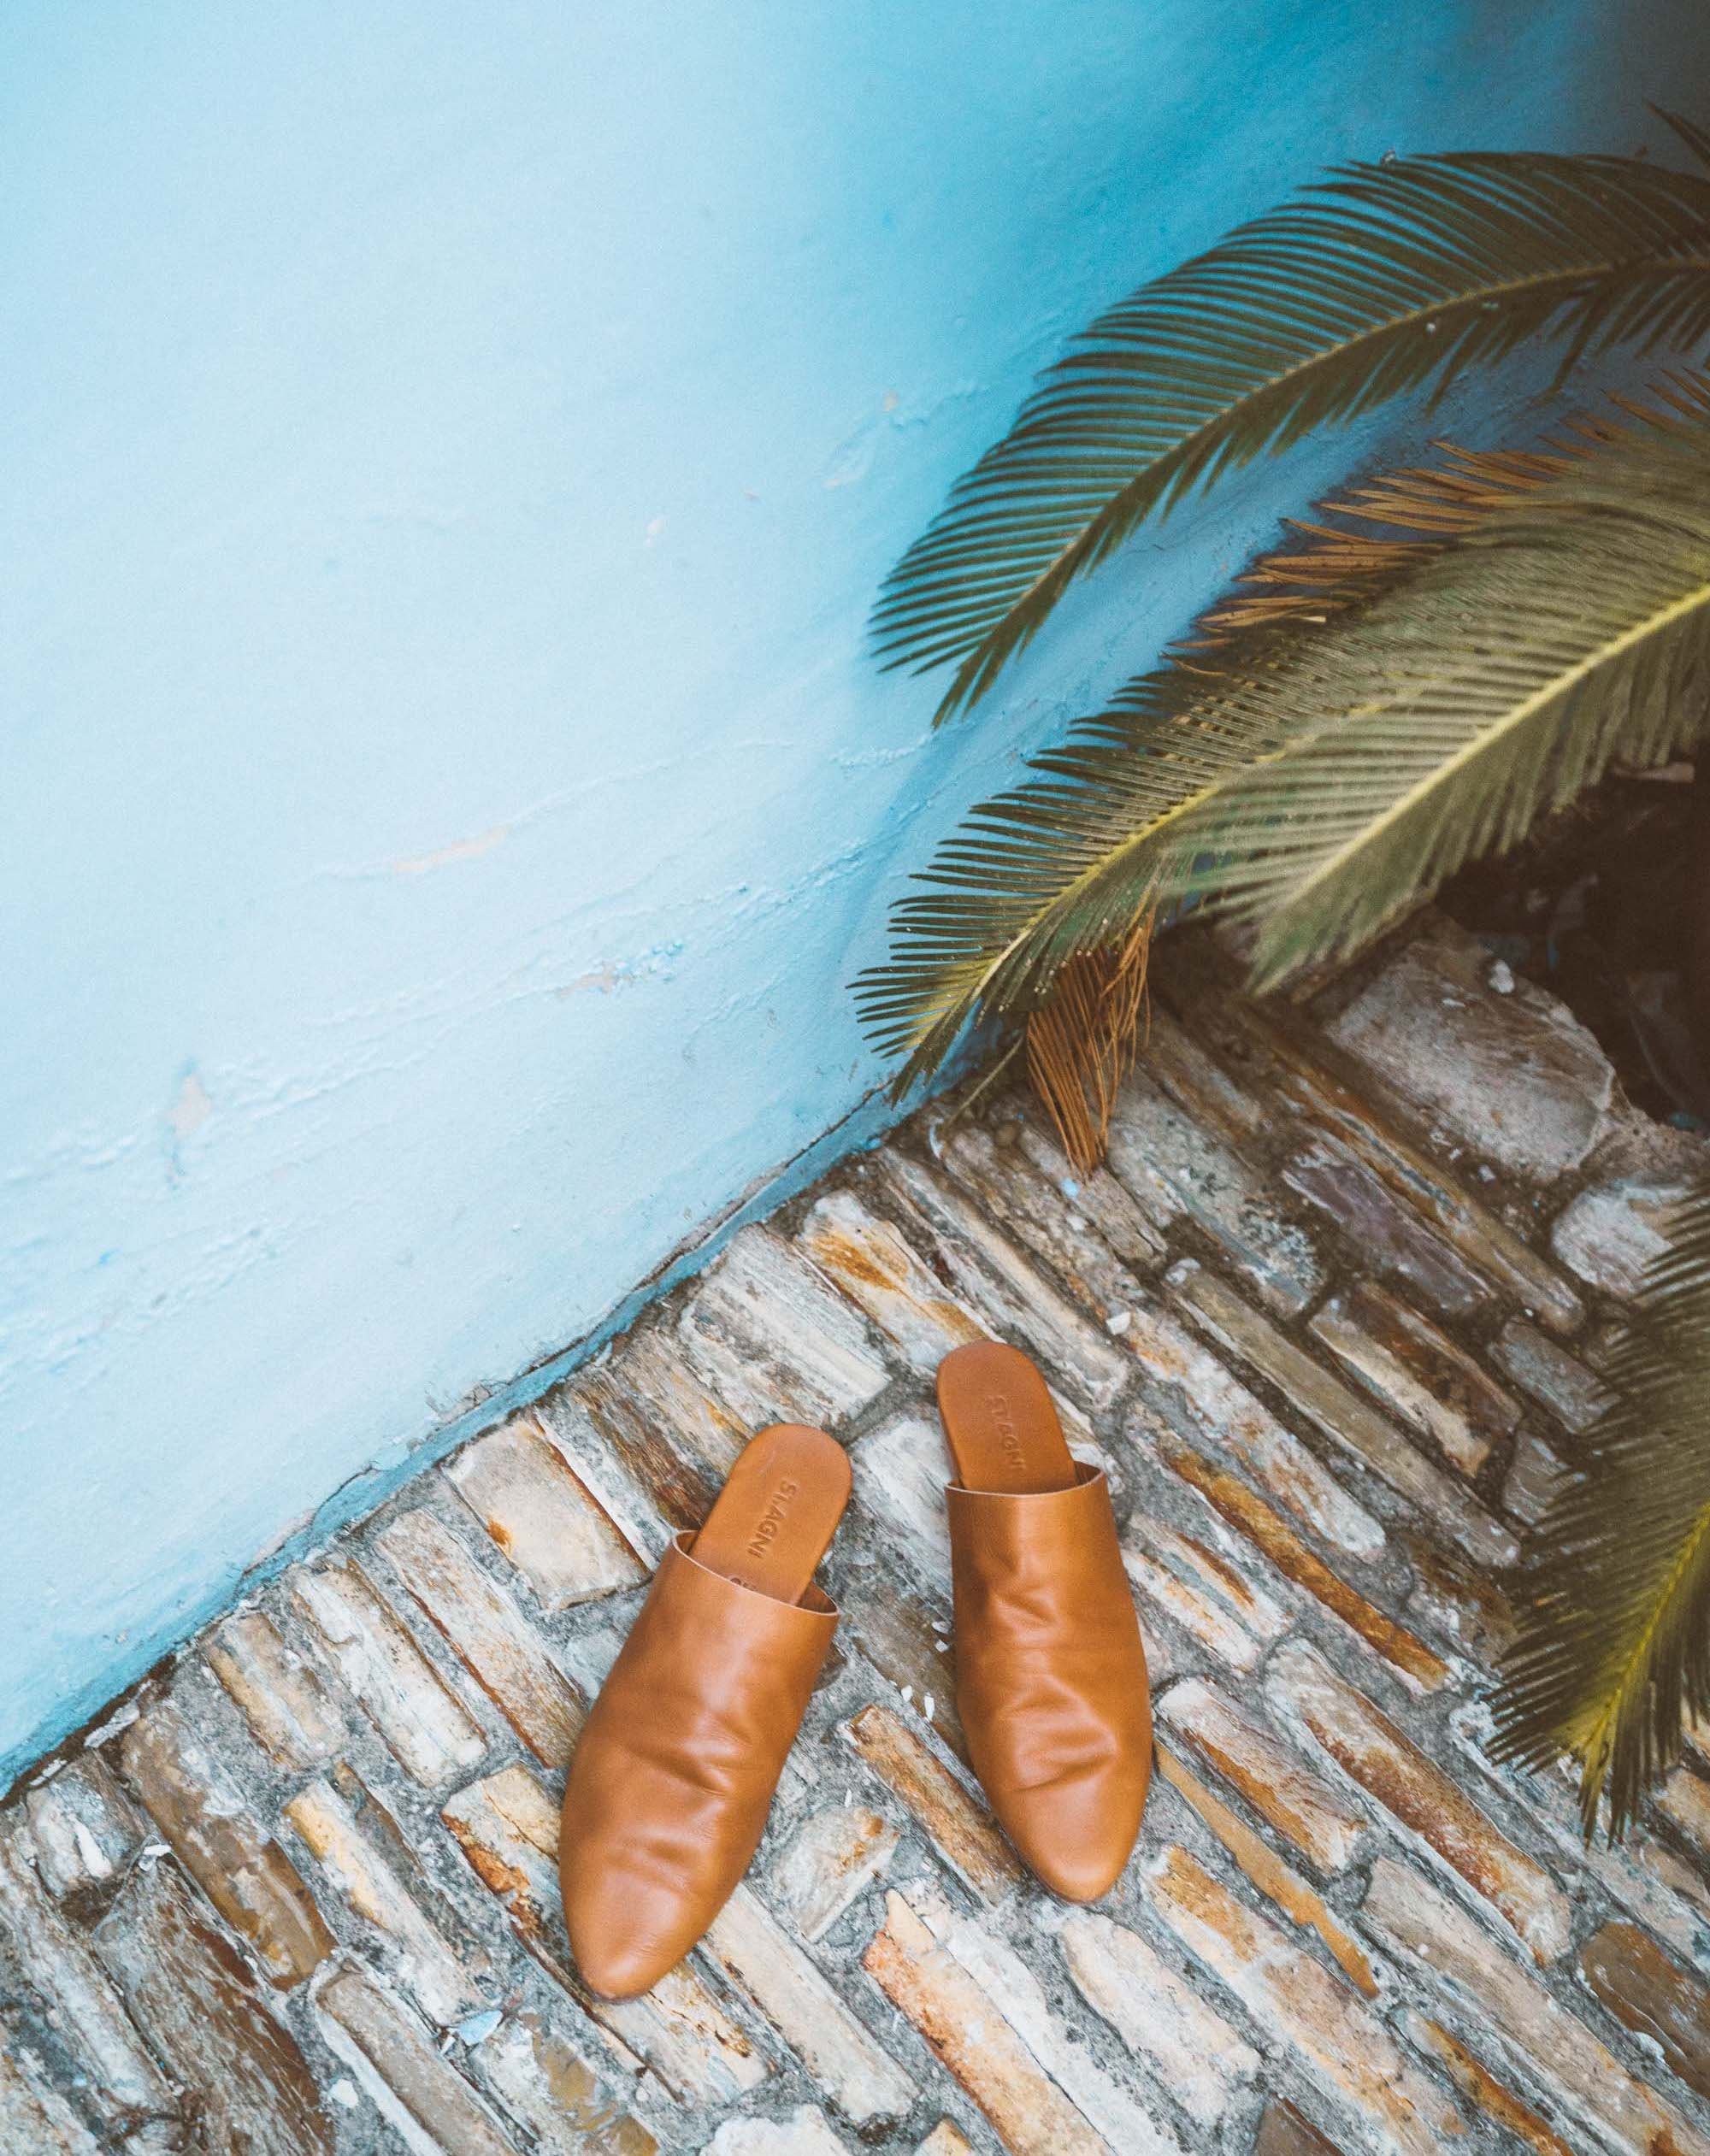 Travel mules shoes in Cyprus via @finduslost